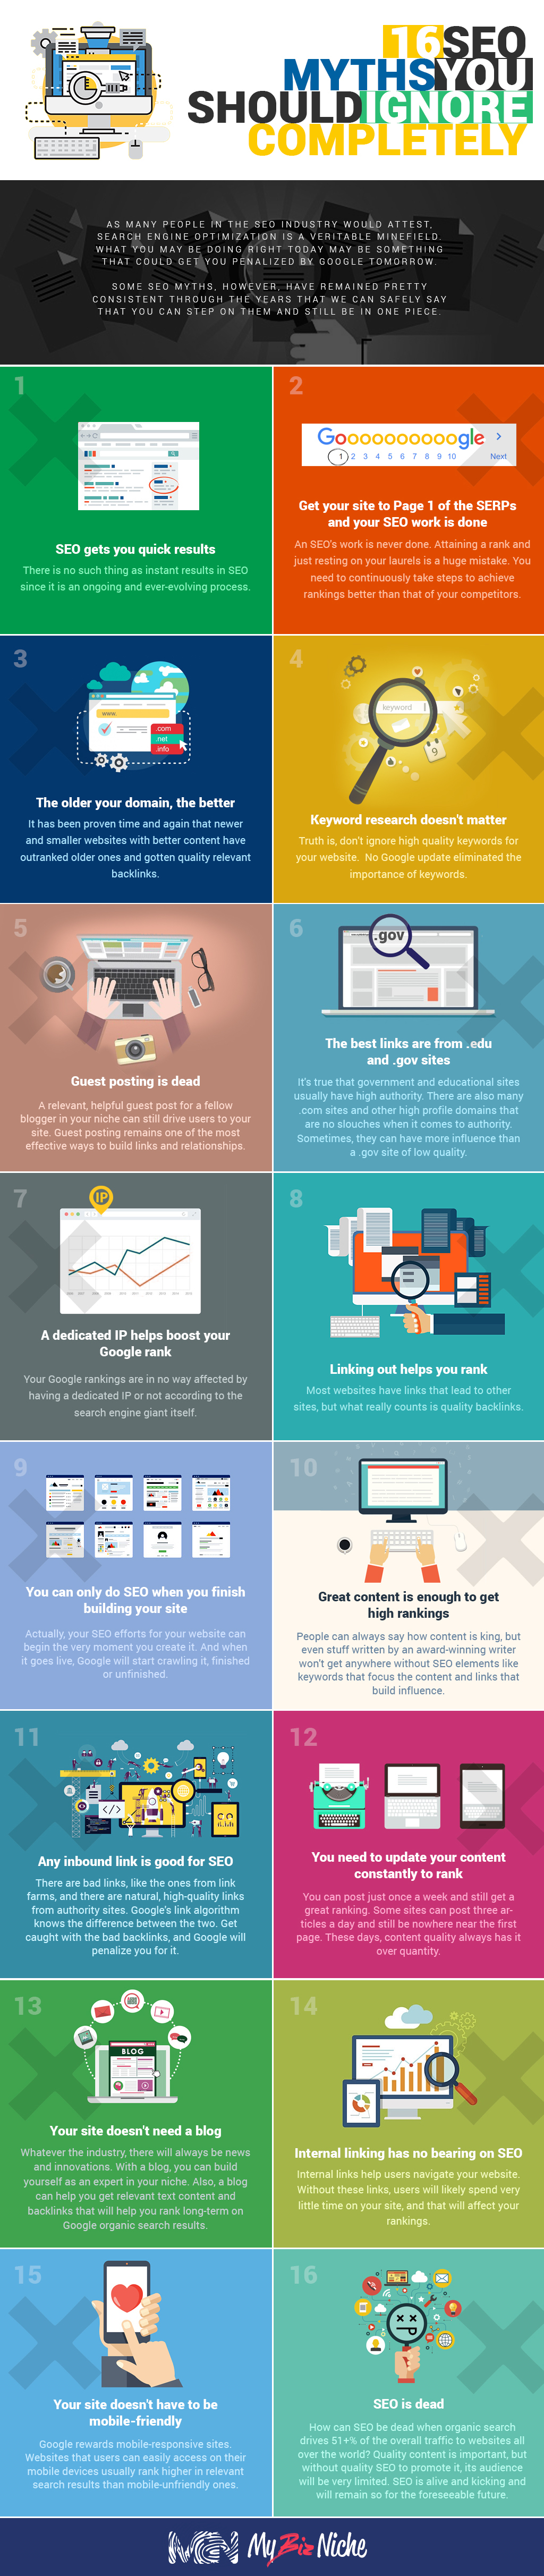 Infographic—16 SEO Myths that you should ignore.